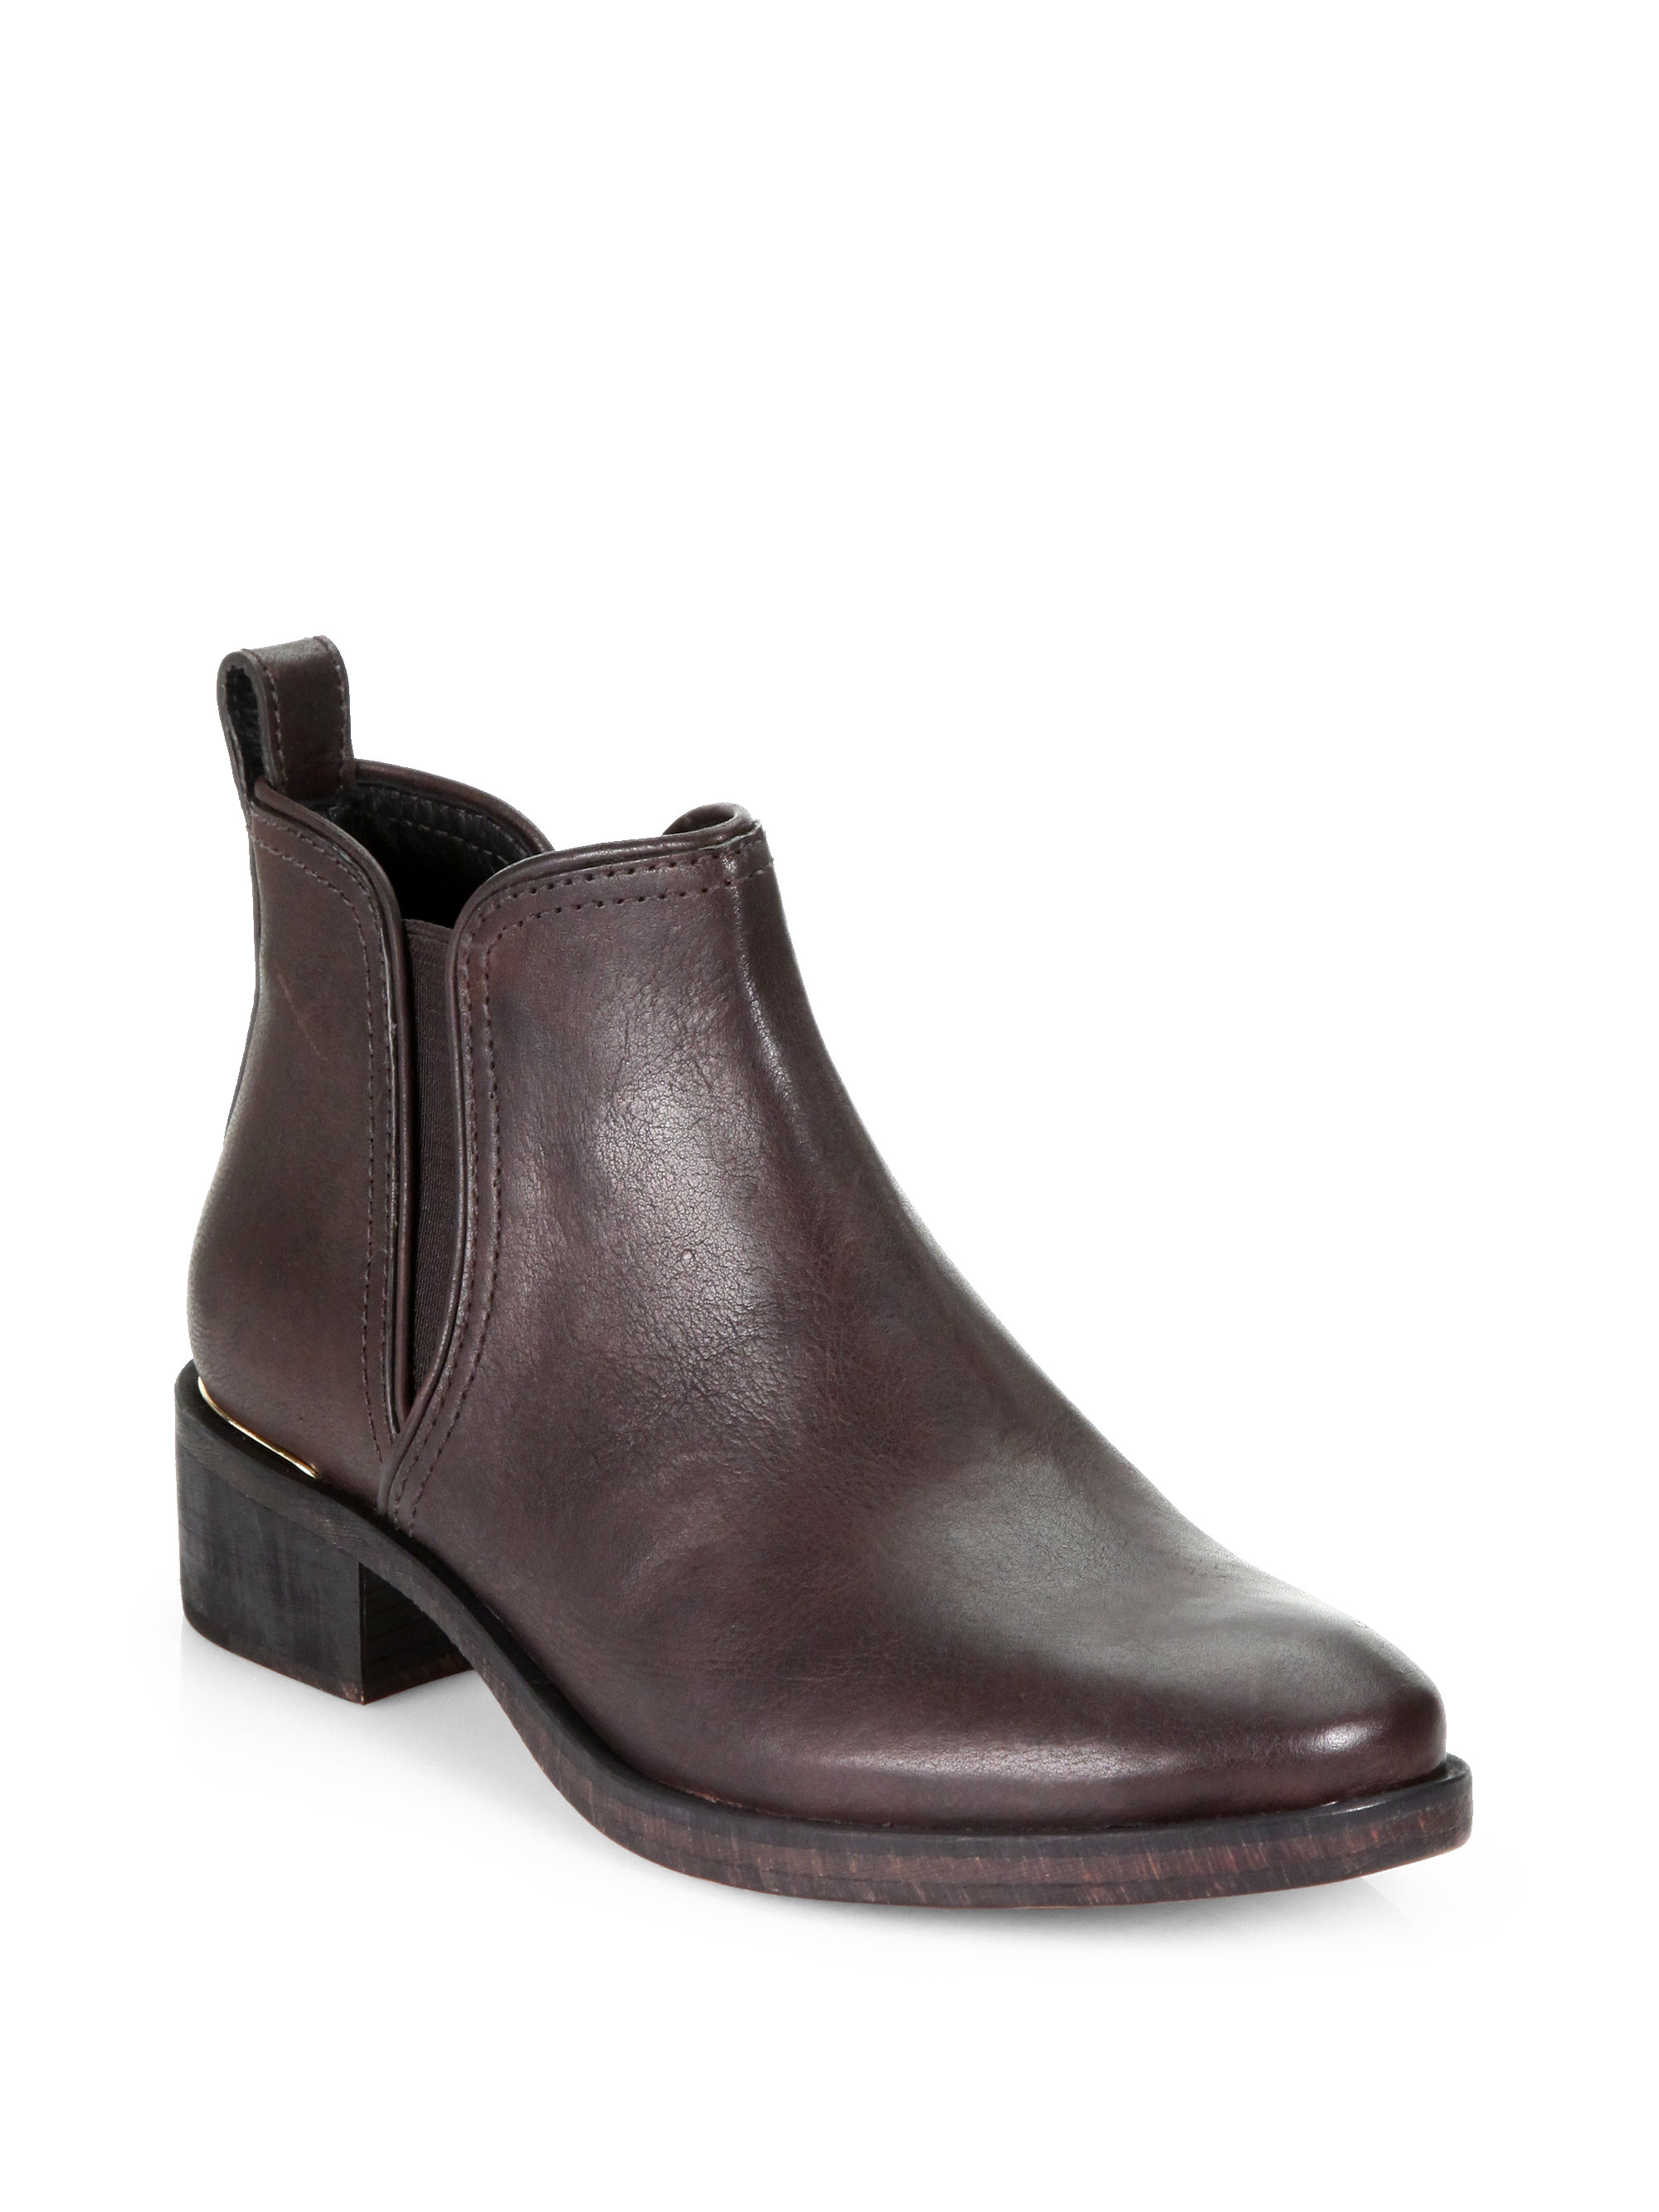 Tory burch Griffith Leather Ankle Boots in Brown